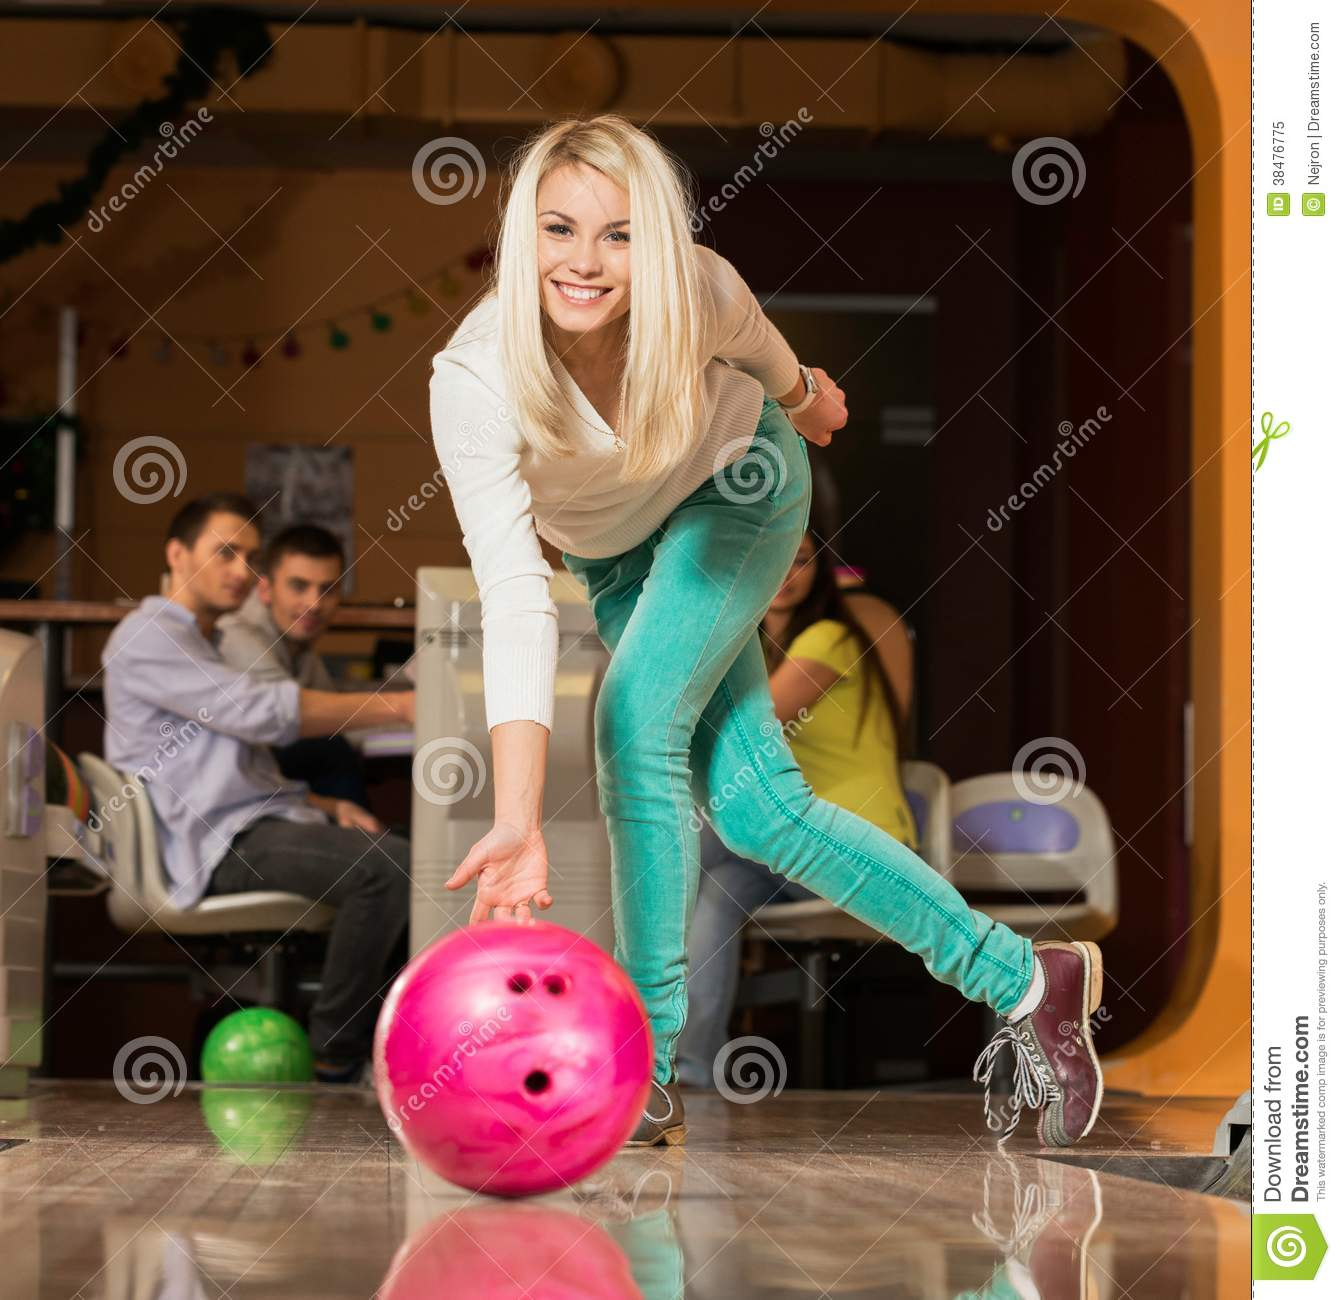 Busty girl bowling balls business your